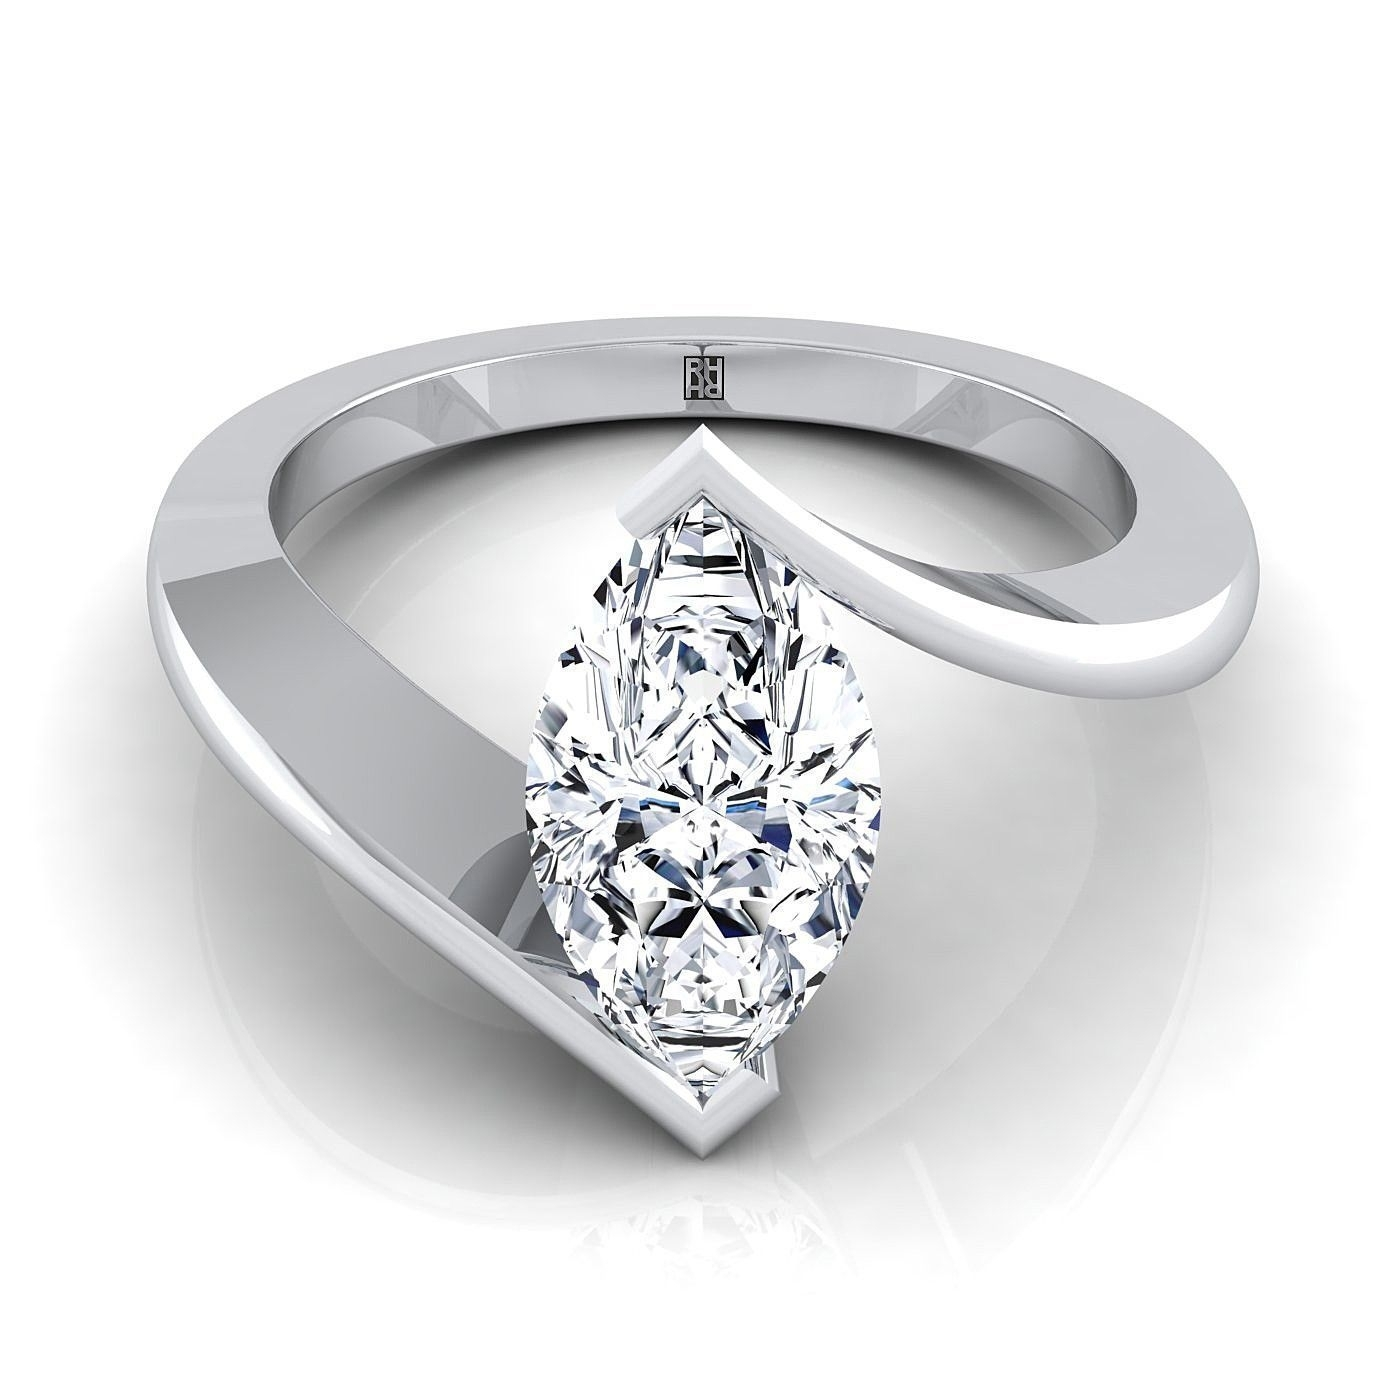 Marquise Diamond Solitaire Engagement Ring In 14K White Gold Throughout 2017 Marquise And Princess Cut Composite Diamond Six Stone Anniversary Bands (View 9 of 15)